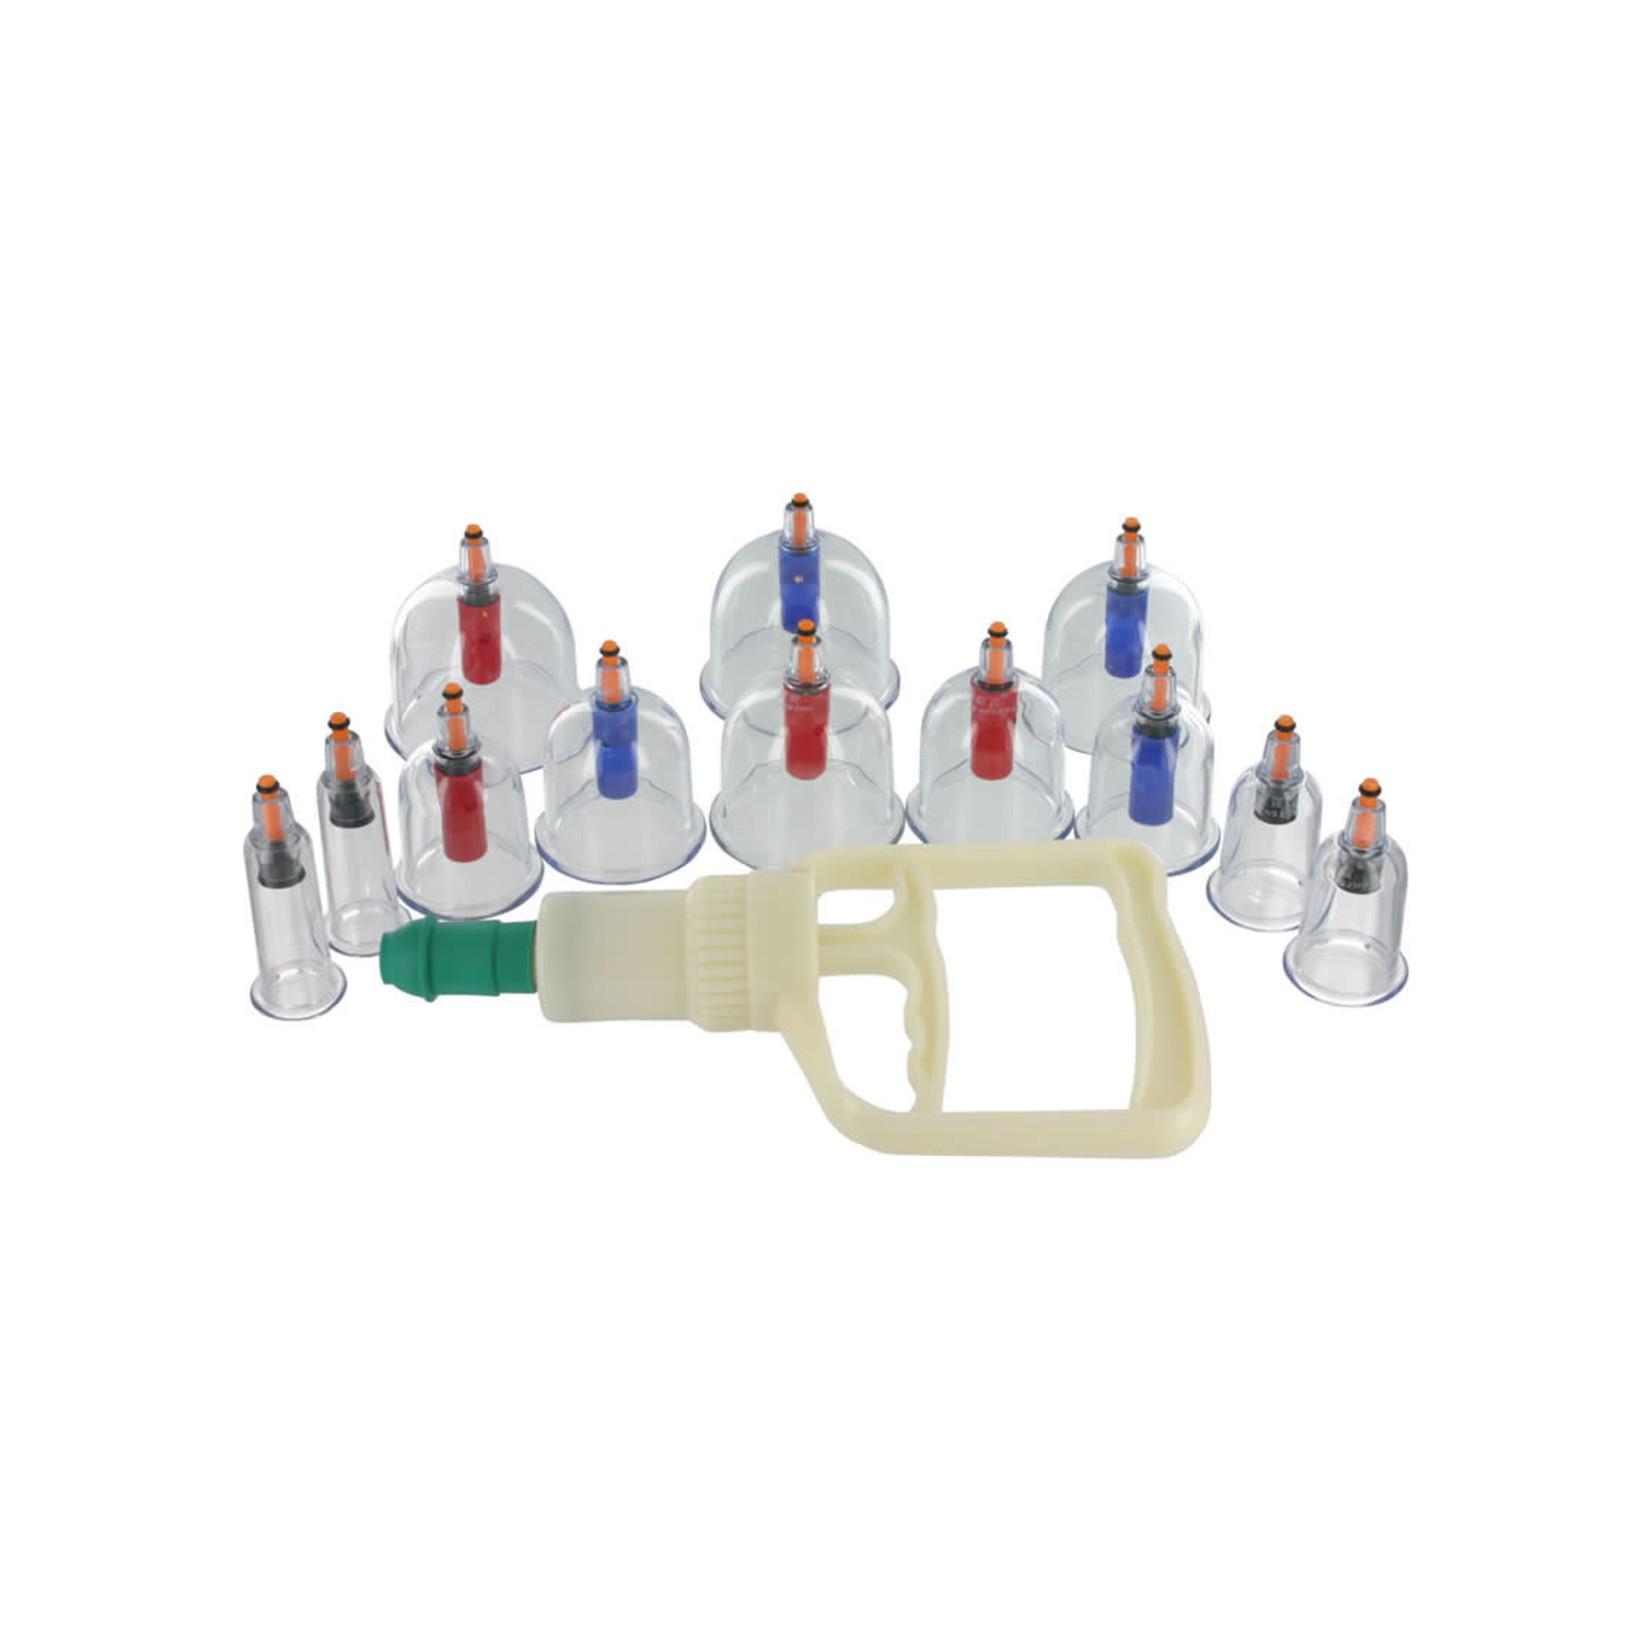 Master Series Sukshen 12 Piece Cupping System